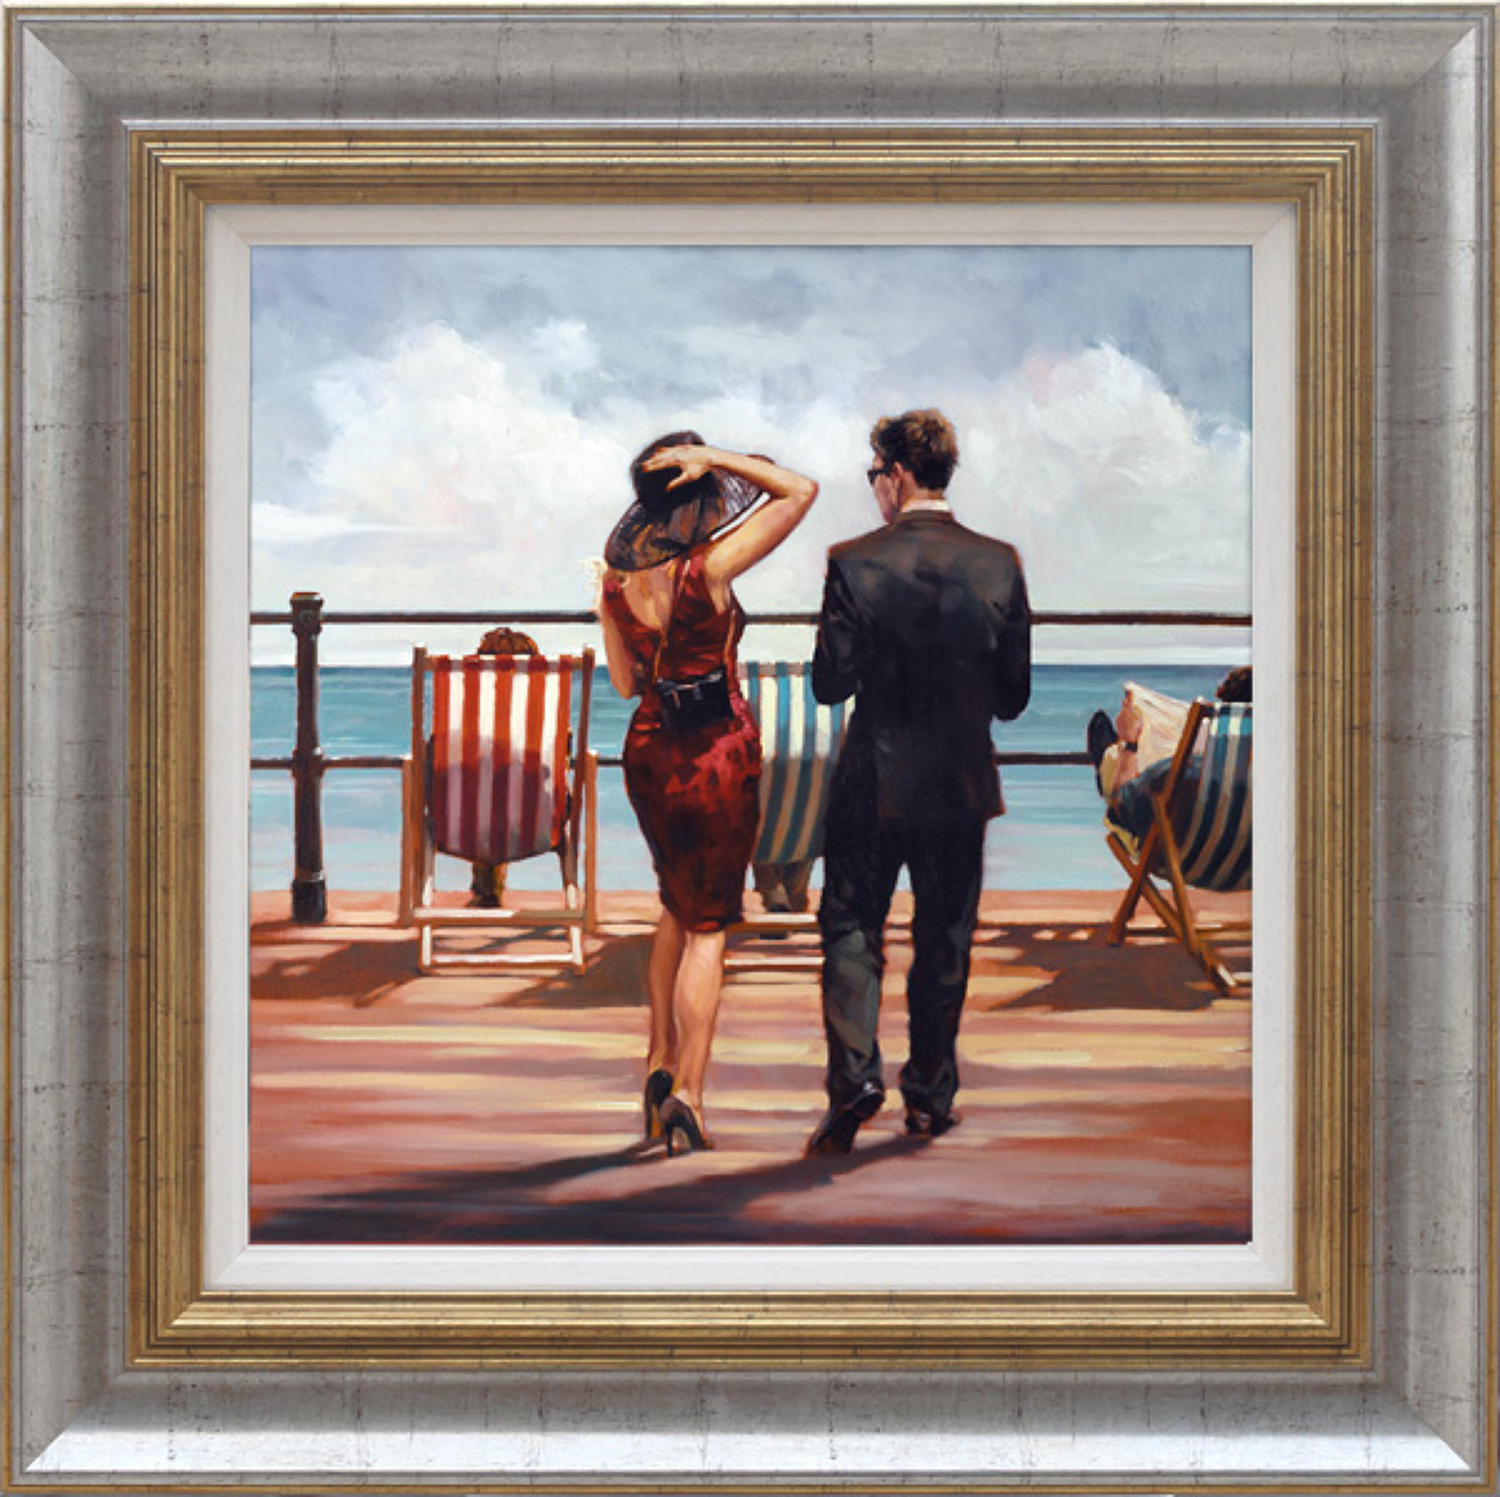 Treading The Boards Framed Art Print By Mark SPain